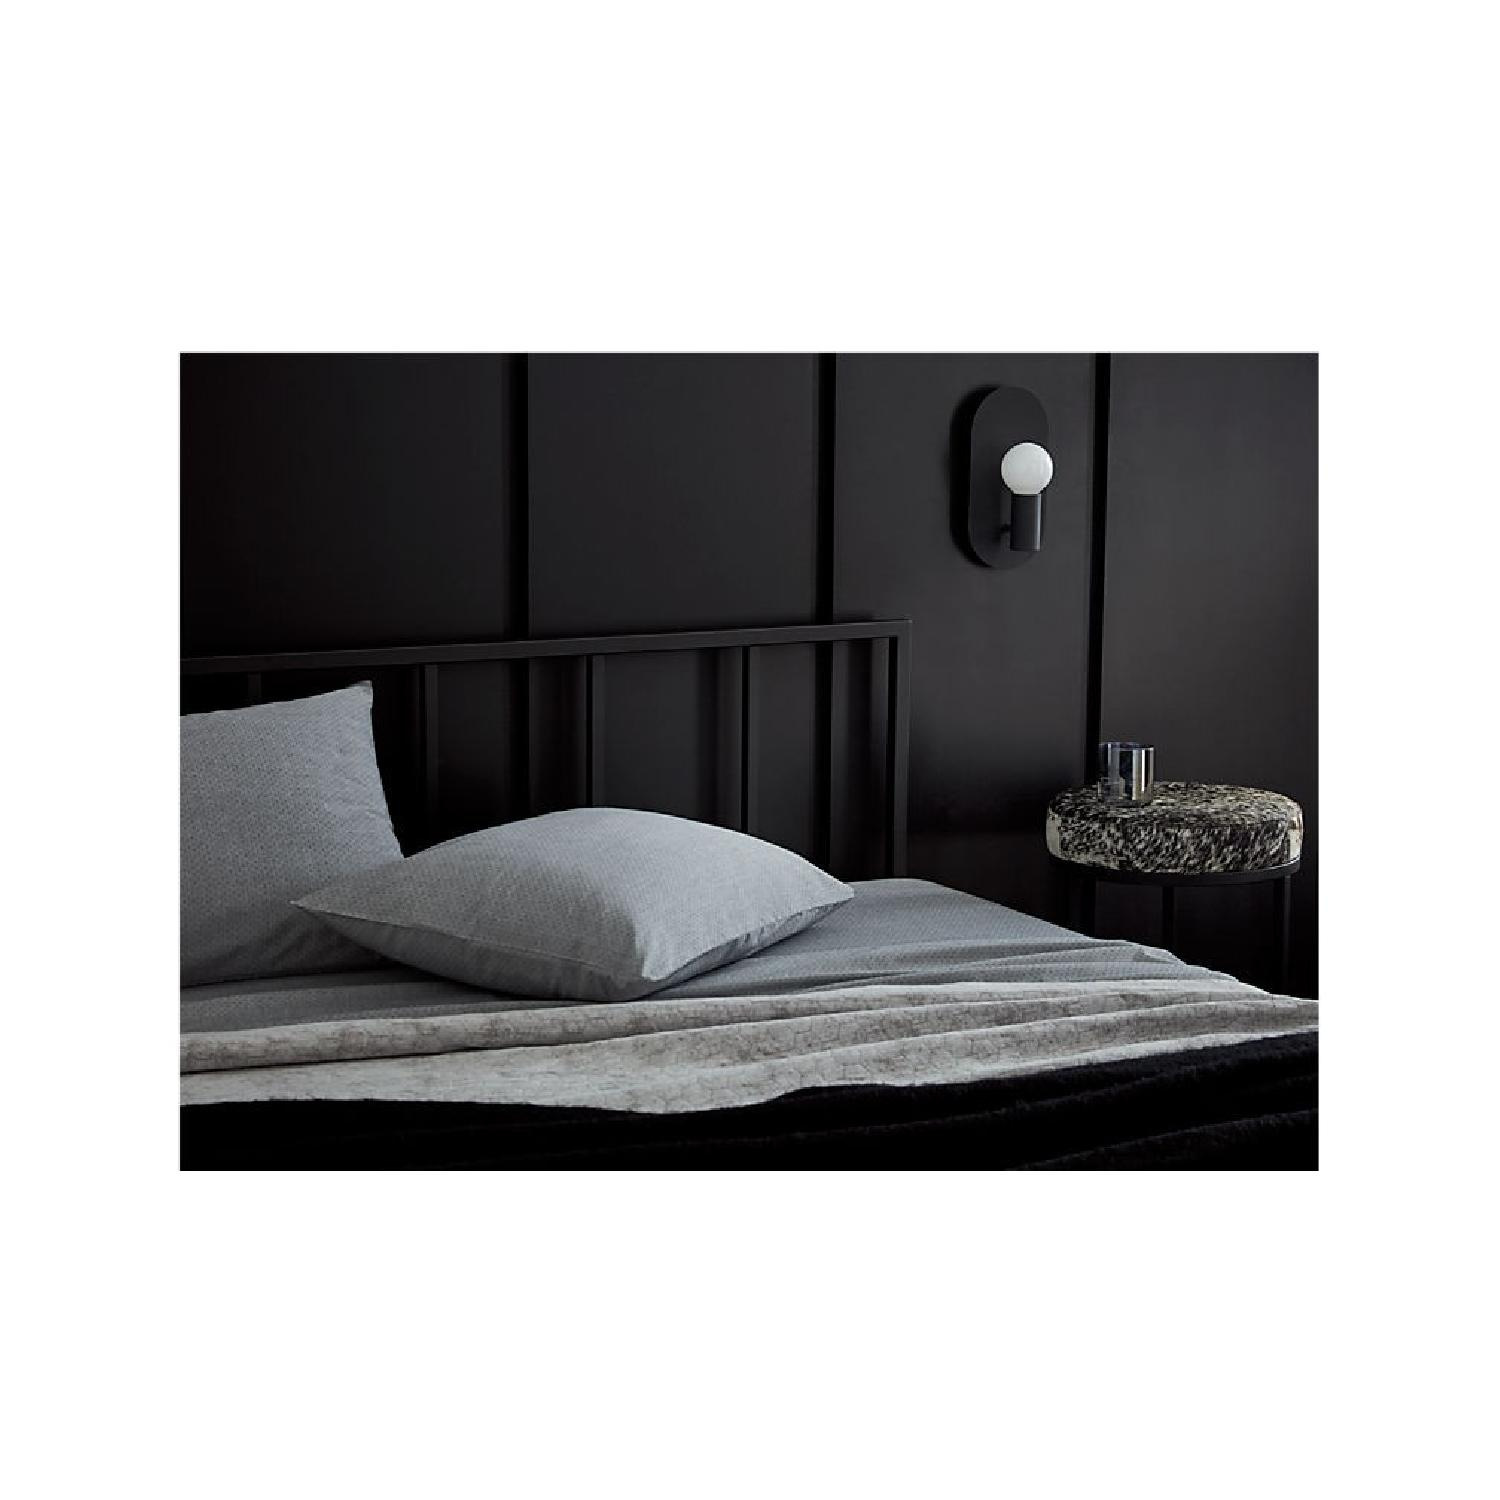 CB2 Alchemy Black Queen Bed Frame - image-2